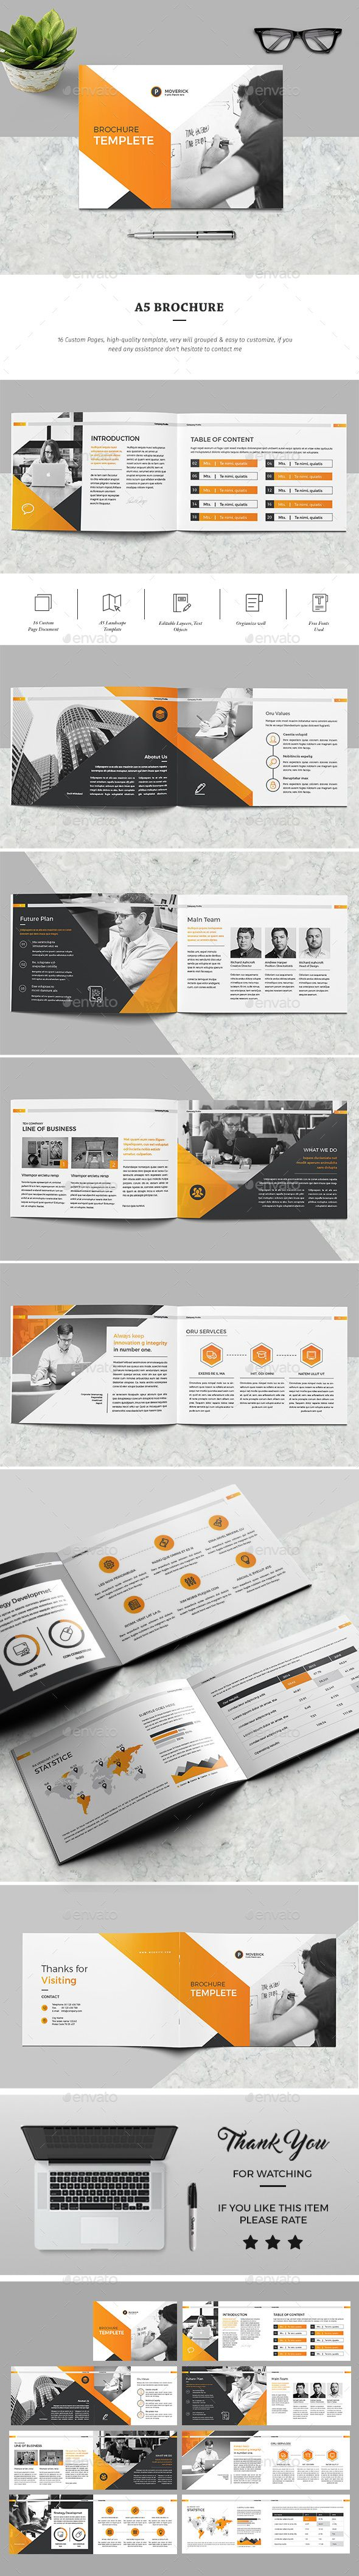 A5 Brochure — InDesign INDD #trendy #visual • Download ➝ https://graphicriver.net/item/a5-brochure/19454727?ref=pxcr